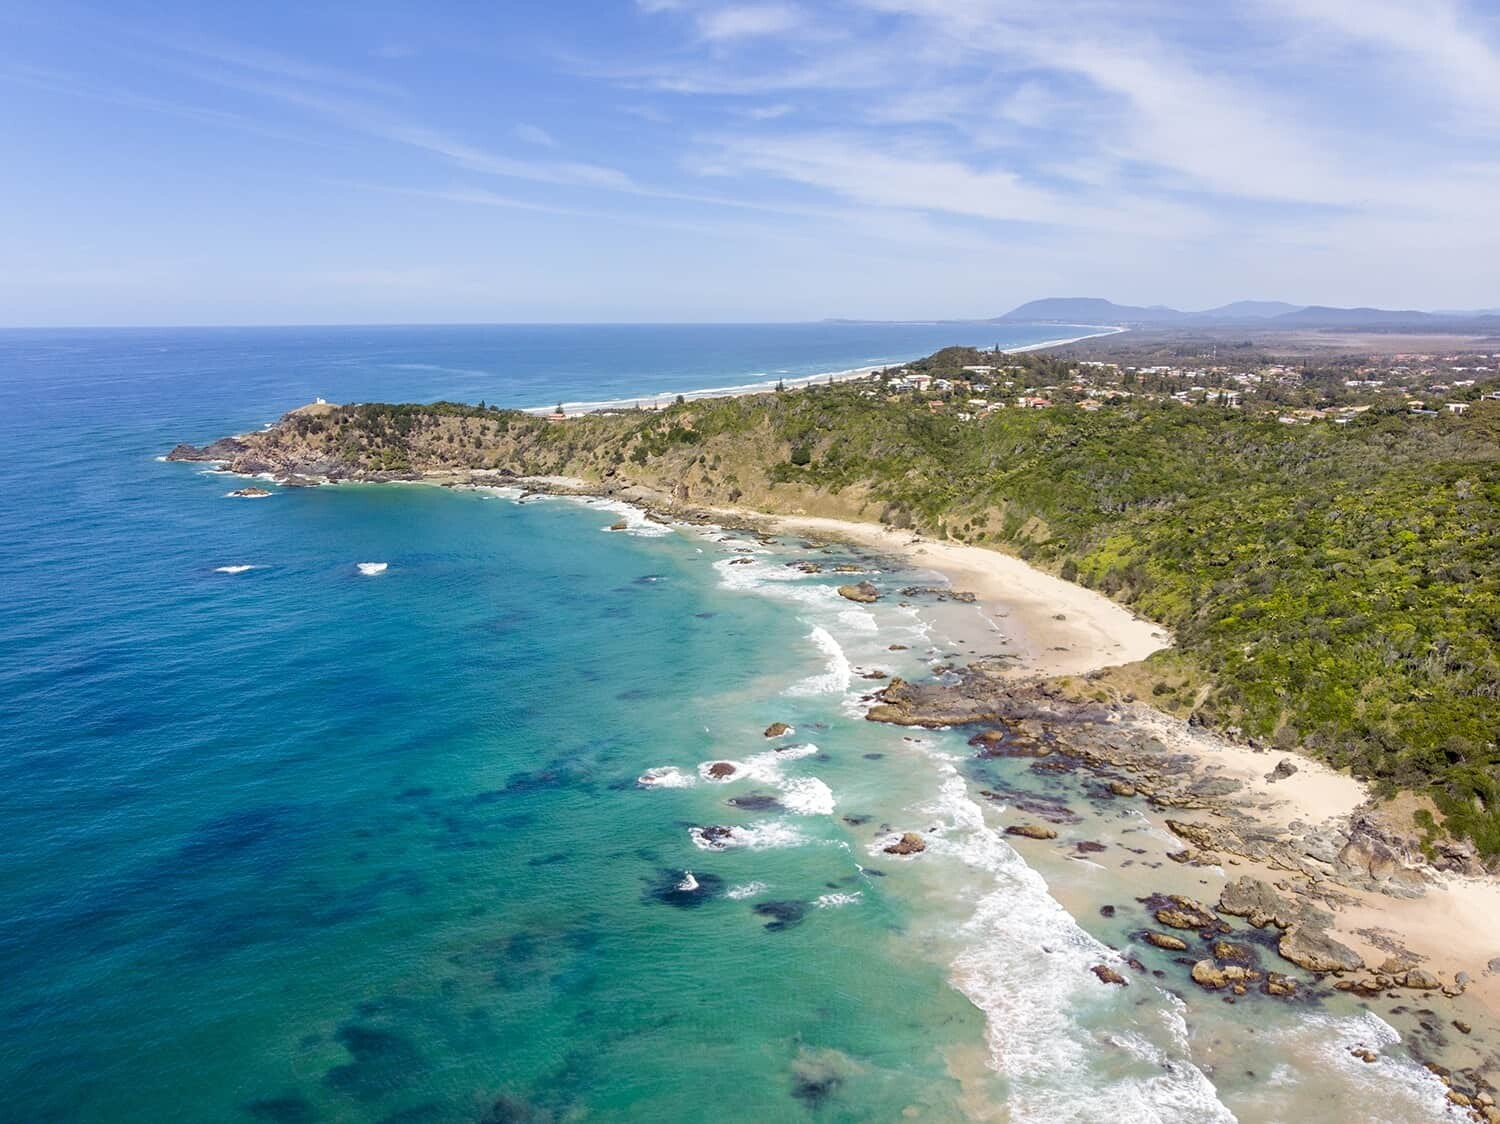 Port Macquarie Photography Location Guide - Beaches + View Points